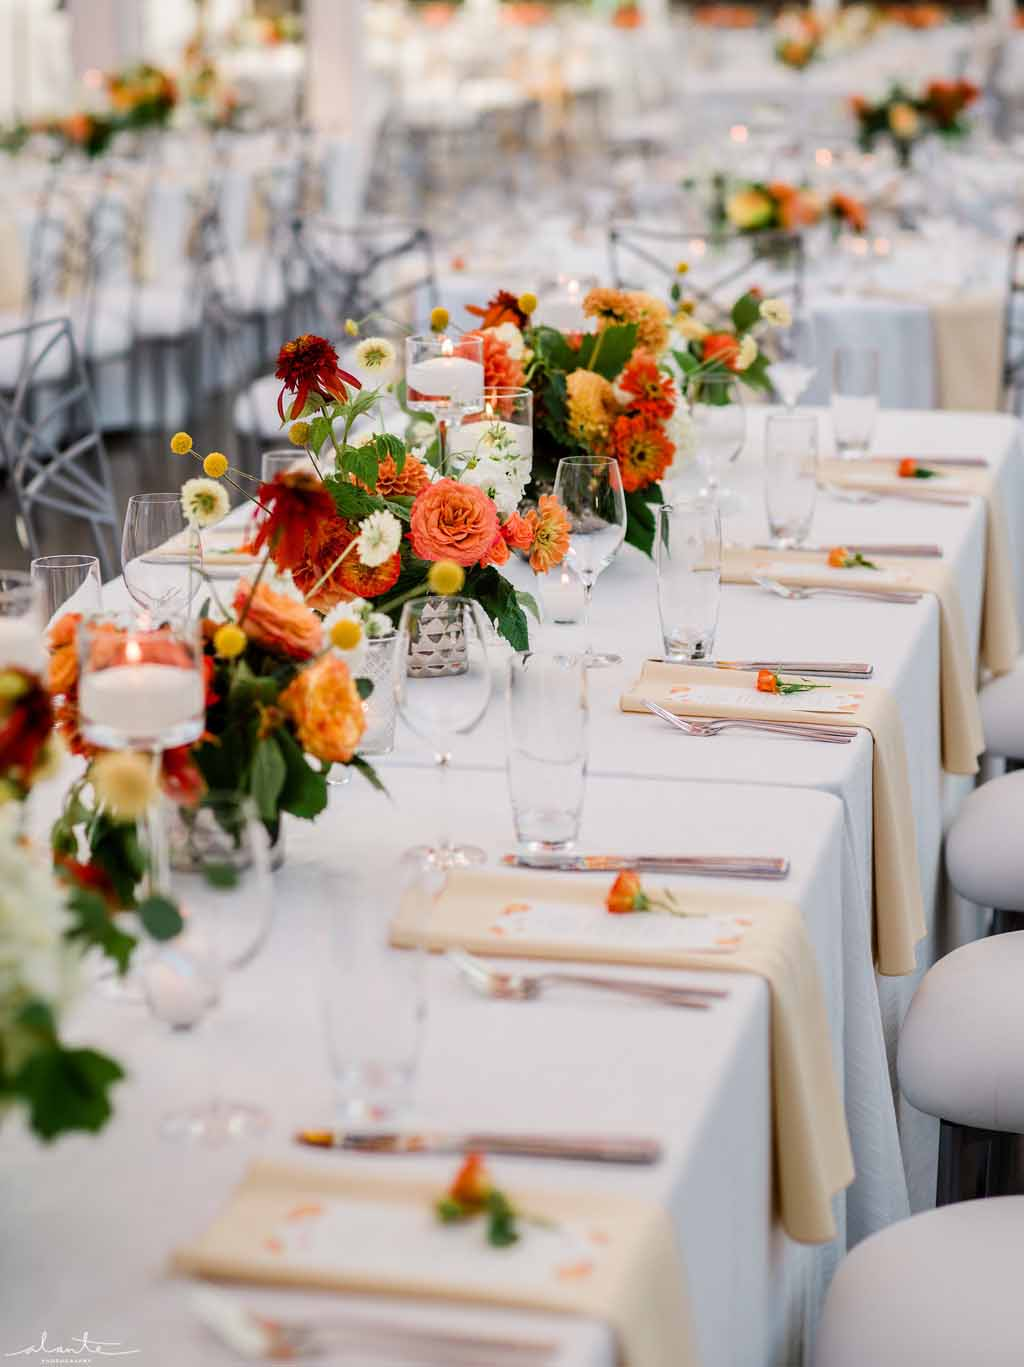 Long rectangle reception tables lined with vibrant orange summer flowers in low vases.